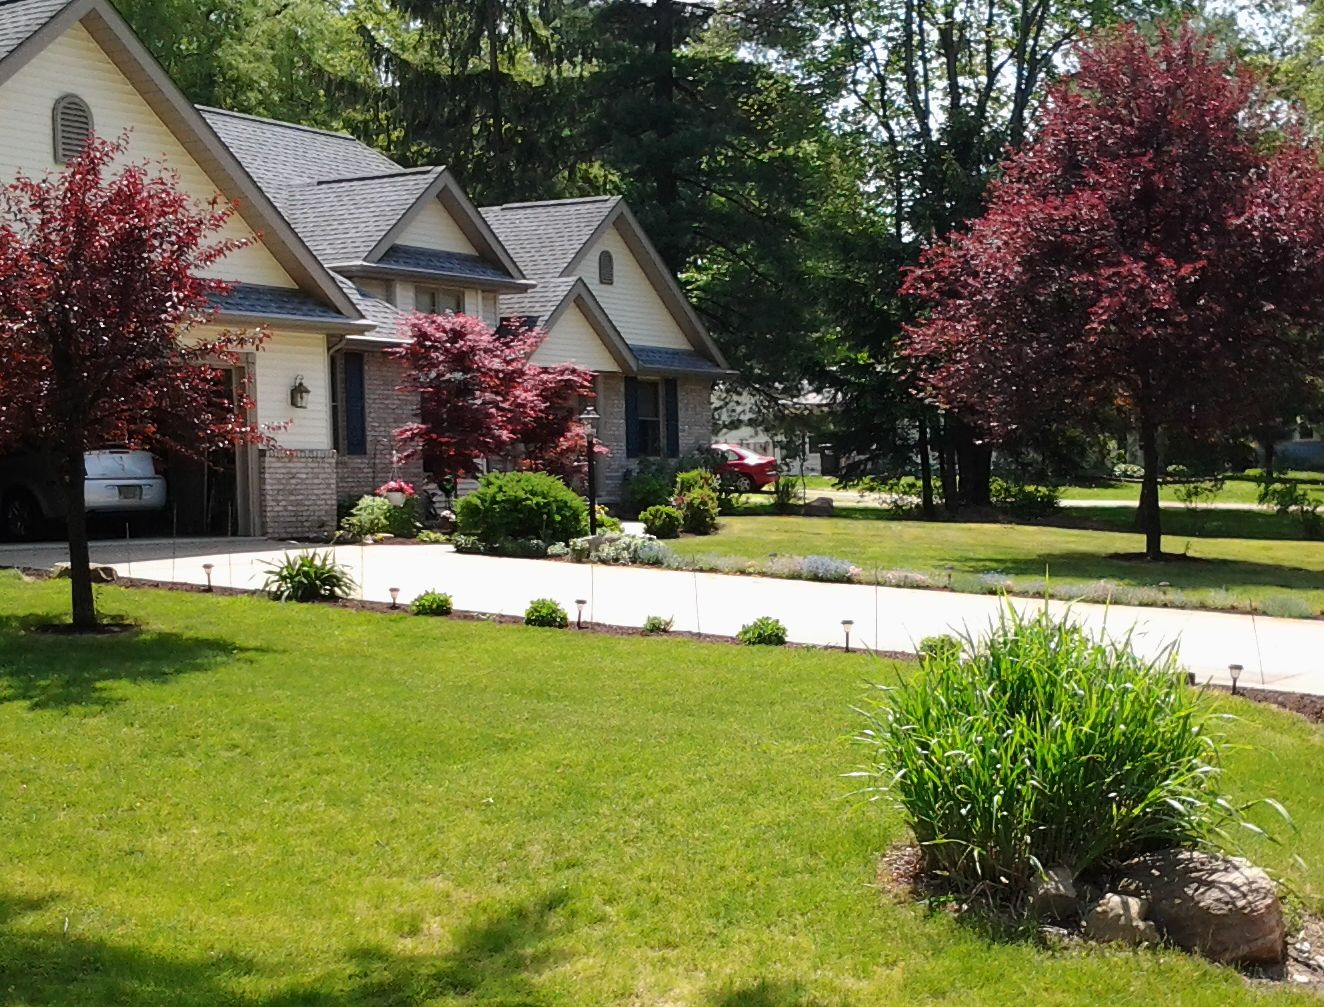 Landscaping akron ohio 4 seasons services lawn care and for Lawn care and maintenance